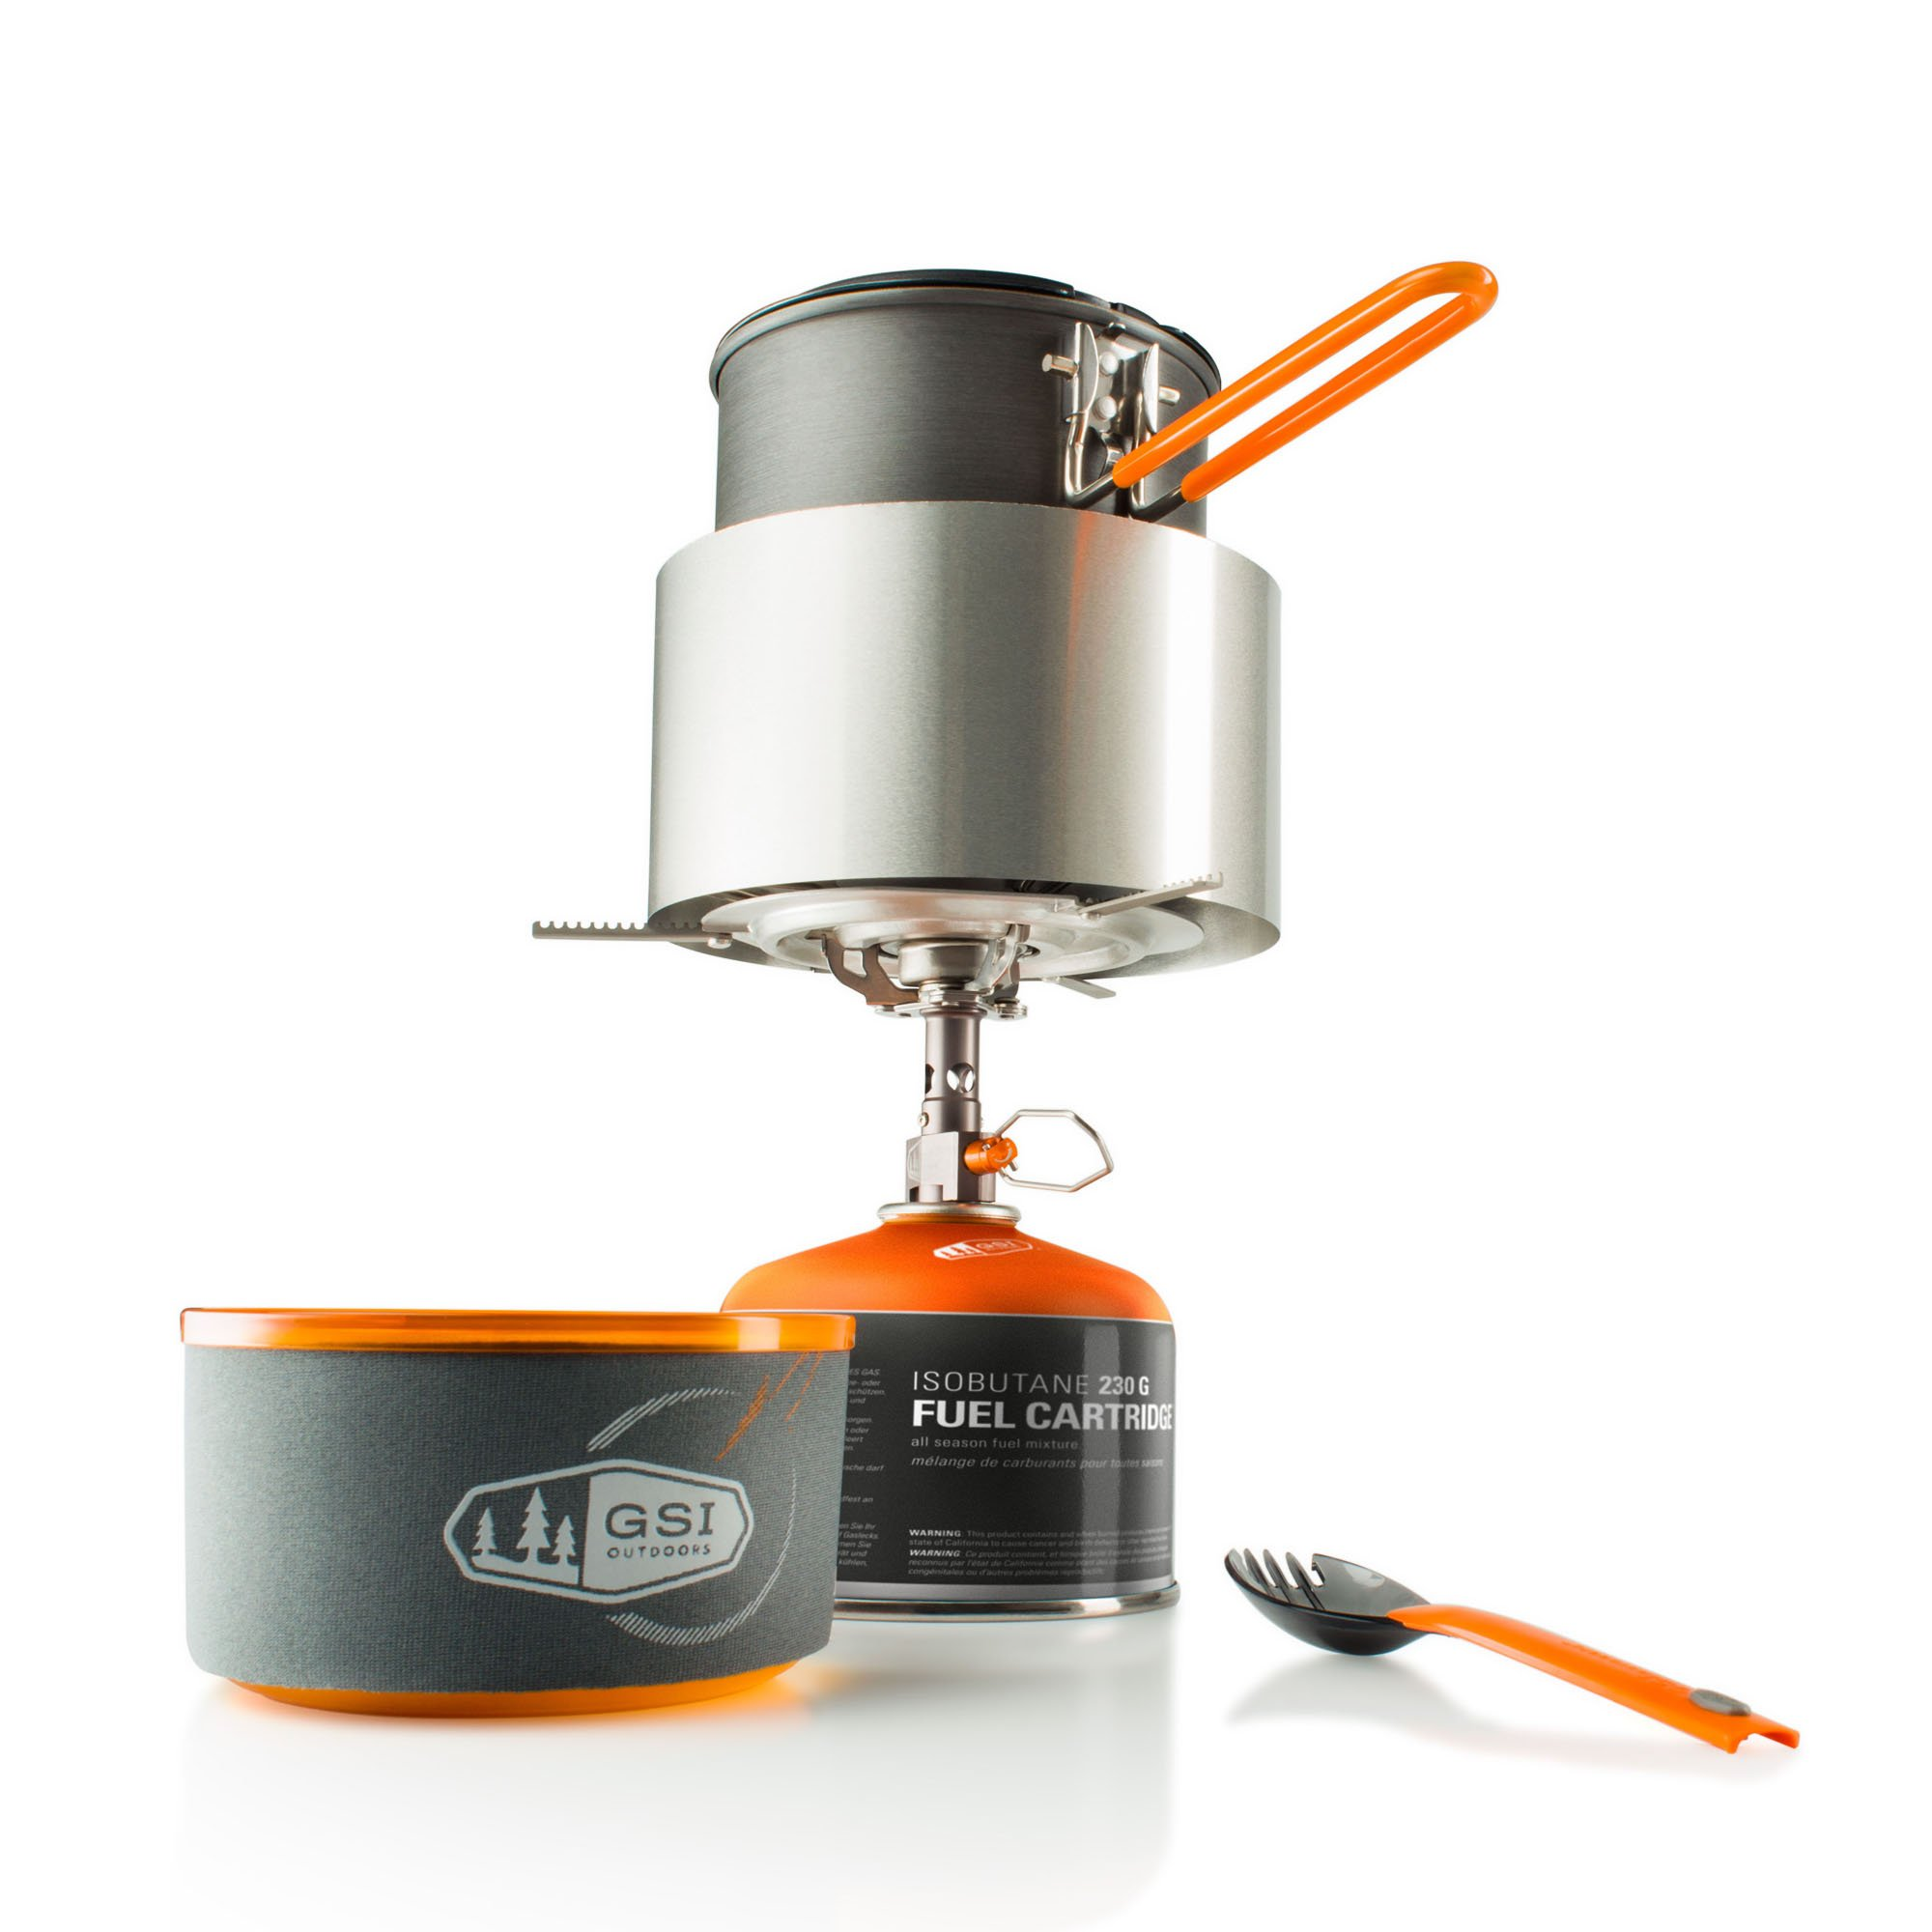 GSI Outdoors - Pinnacle Soloist Complete, Nesting Cook Set, Superior Backcountry Cookware Since 1985 by GSI Outdoors